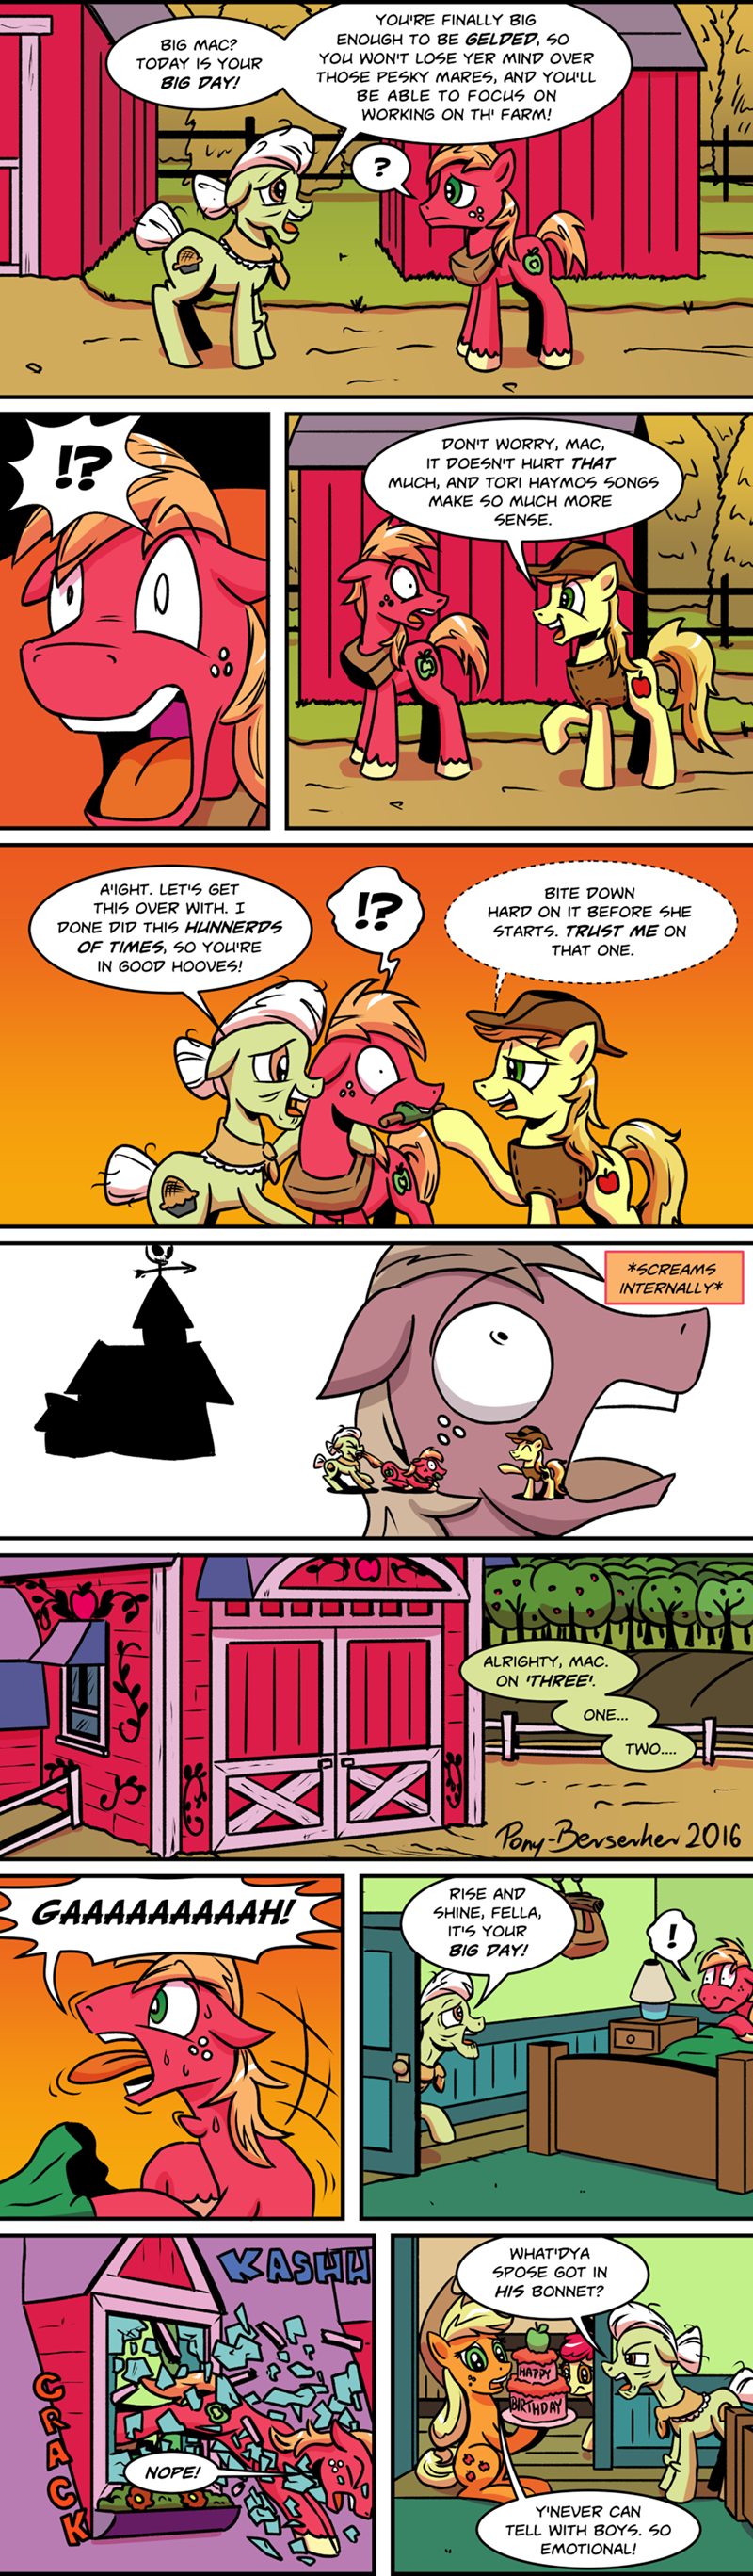 applejack,braeburn,apple bloom,Big Macintosh,granny smith,comic